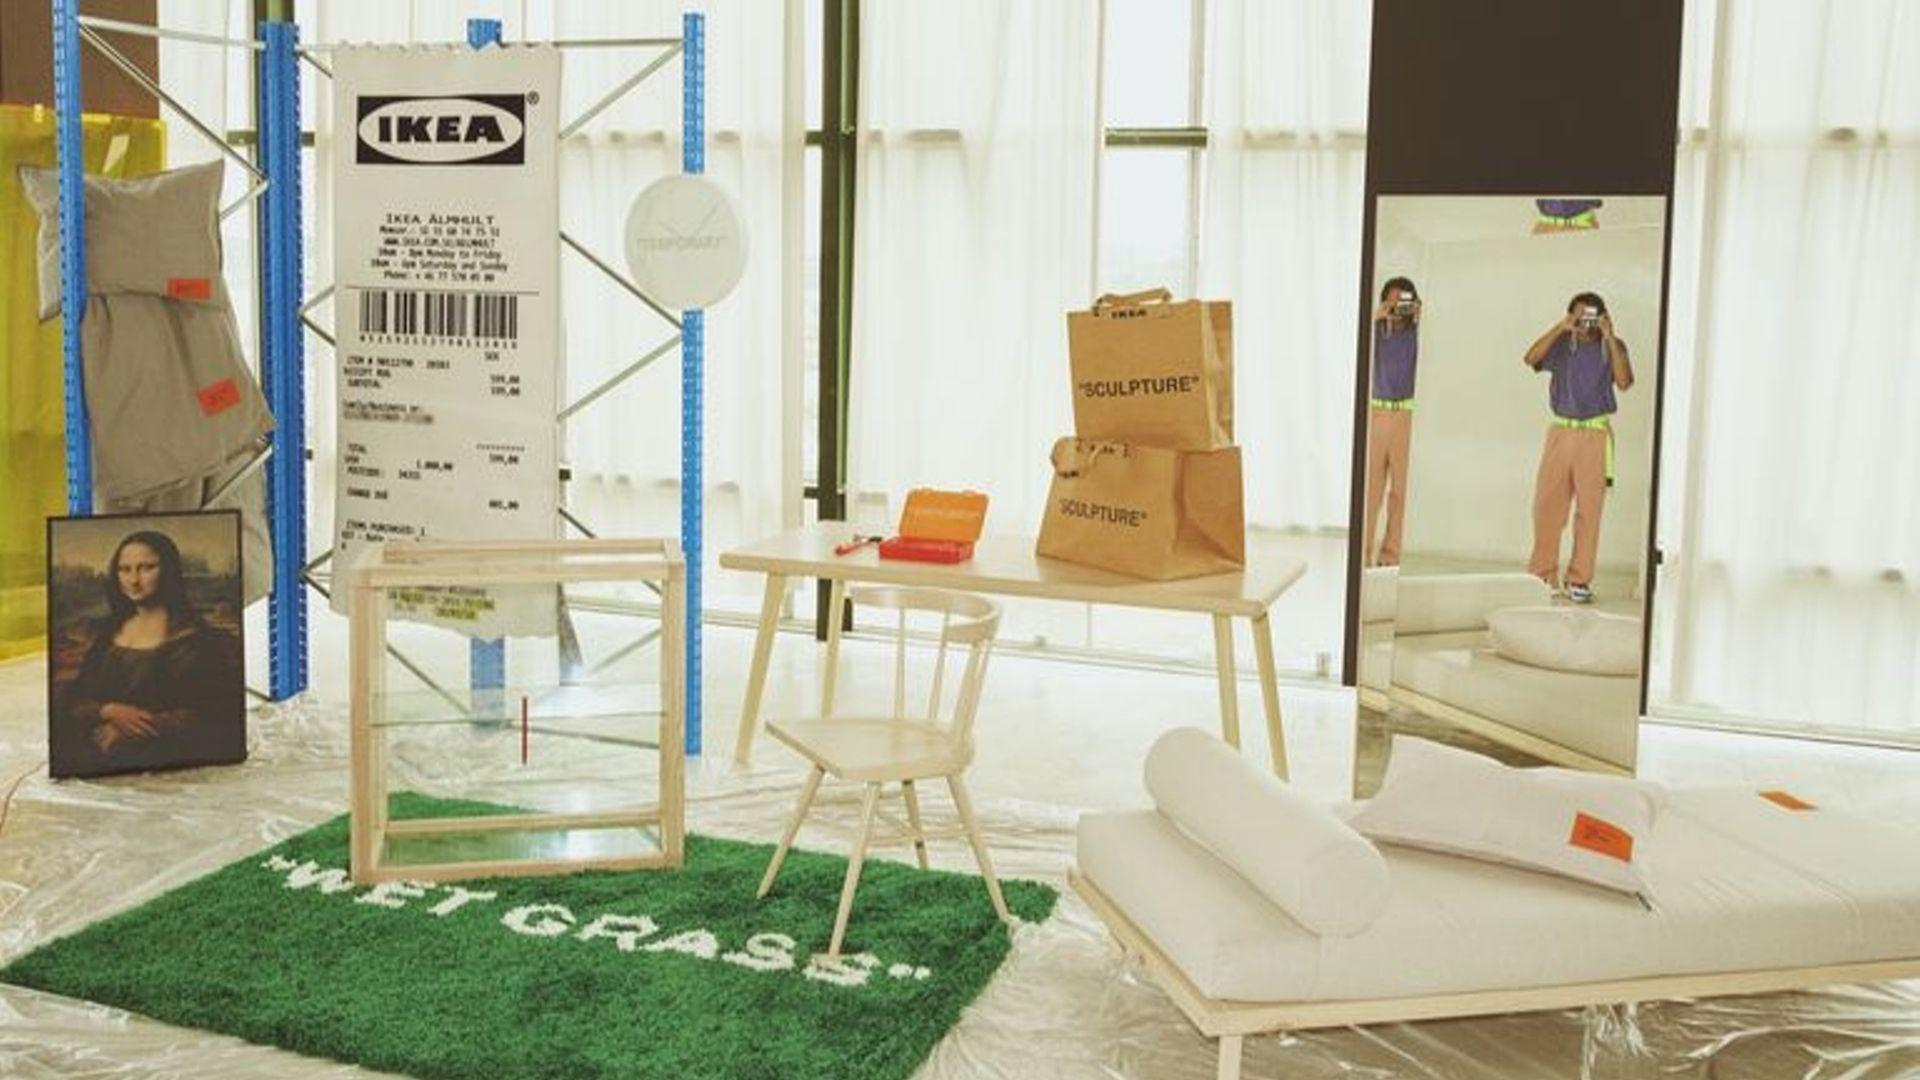 Virgil Abloh Launches His Limited Edition Ikea Collection